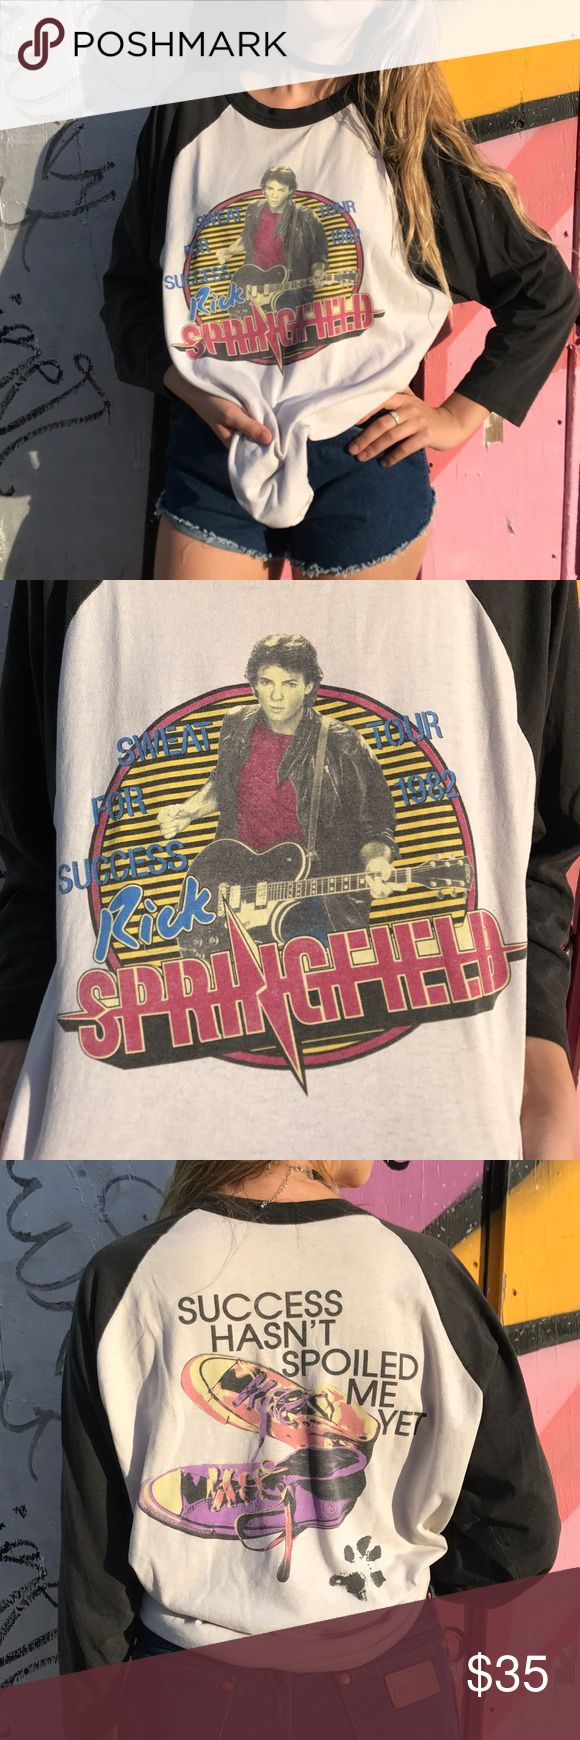 Vintage Rick Springfield 1982 Tour Tee Shirt Awesome Vintage Rick Springfield 1982 Tour Tee Shirt! May be a reprint, but not positive. Looks like it could be original, printing fair just in case it's a reprint. Fits like a L, tag says XL. Enjoy! Shirts Tees - Long Sleeve